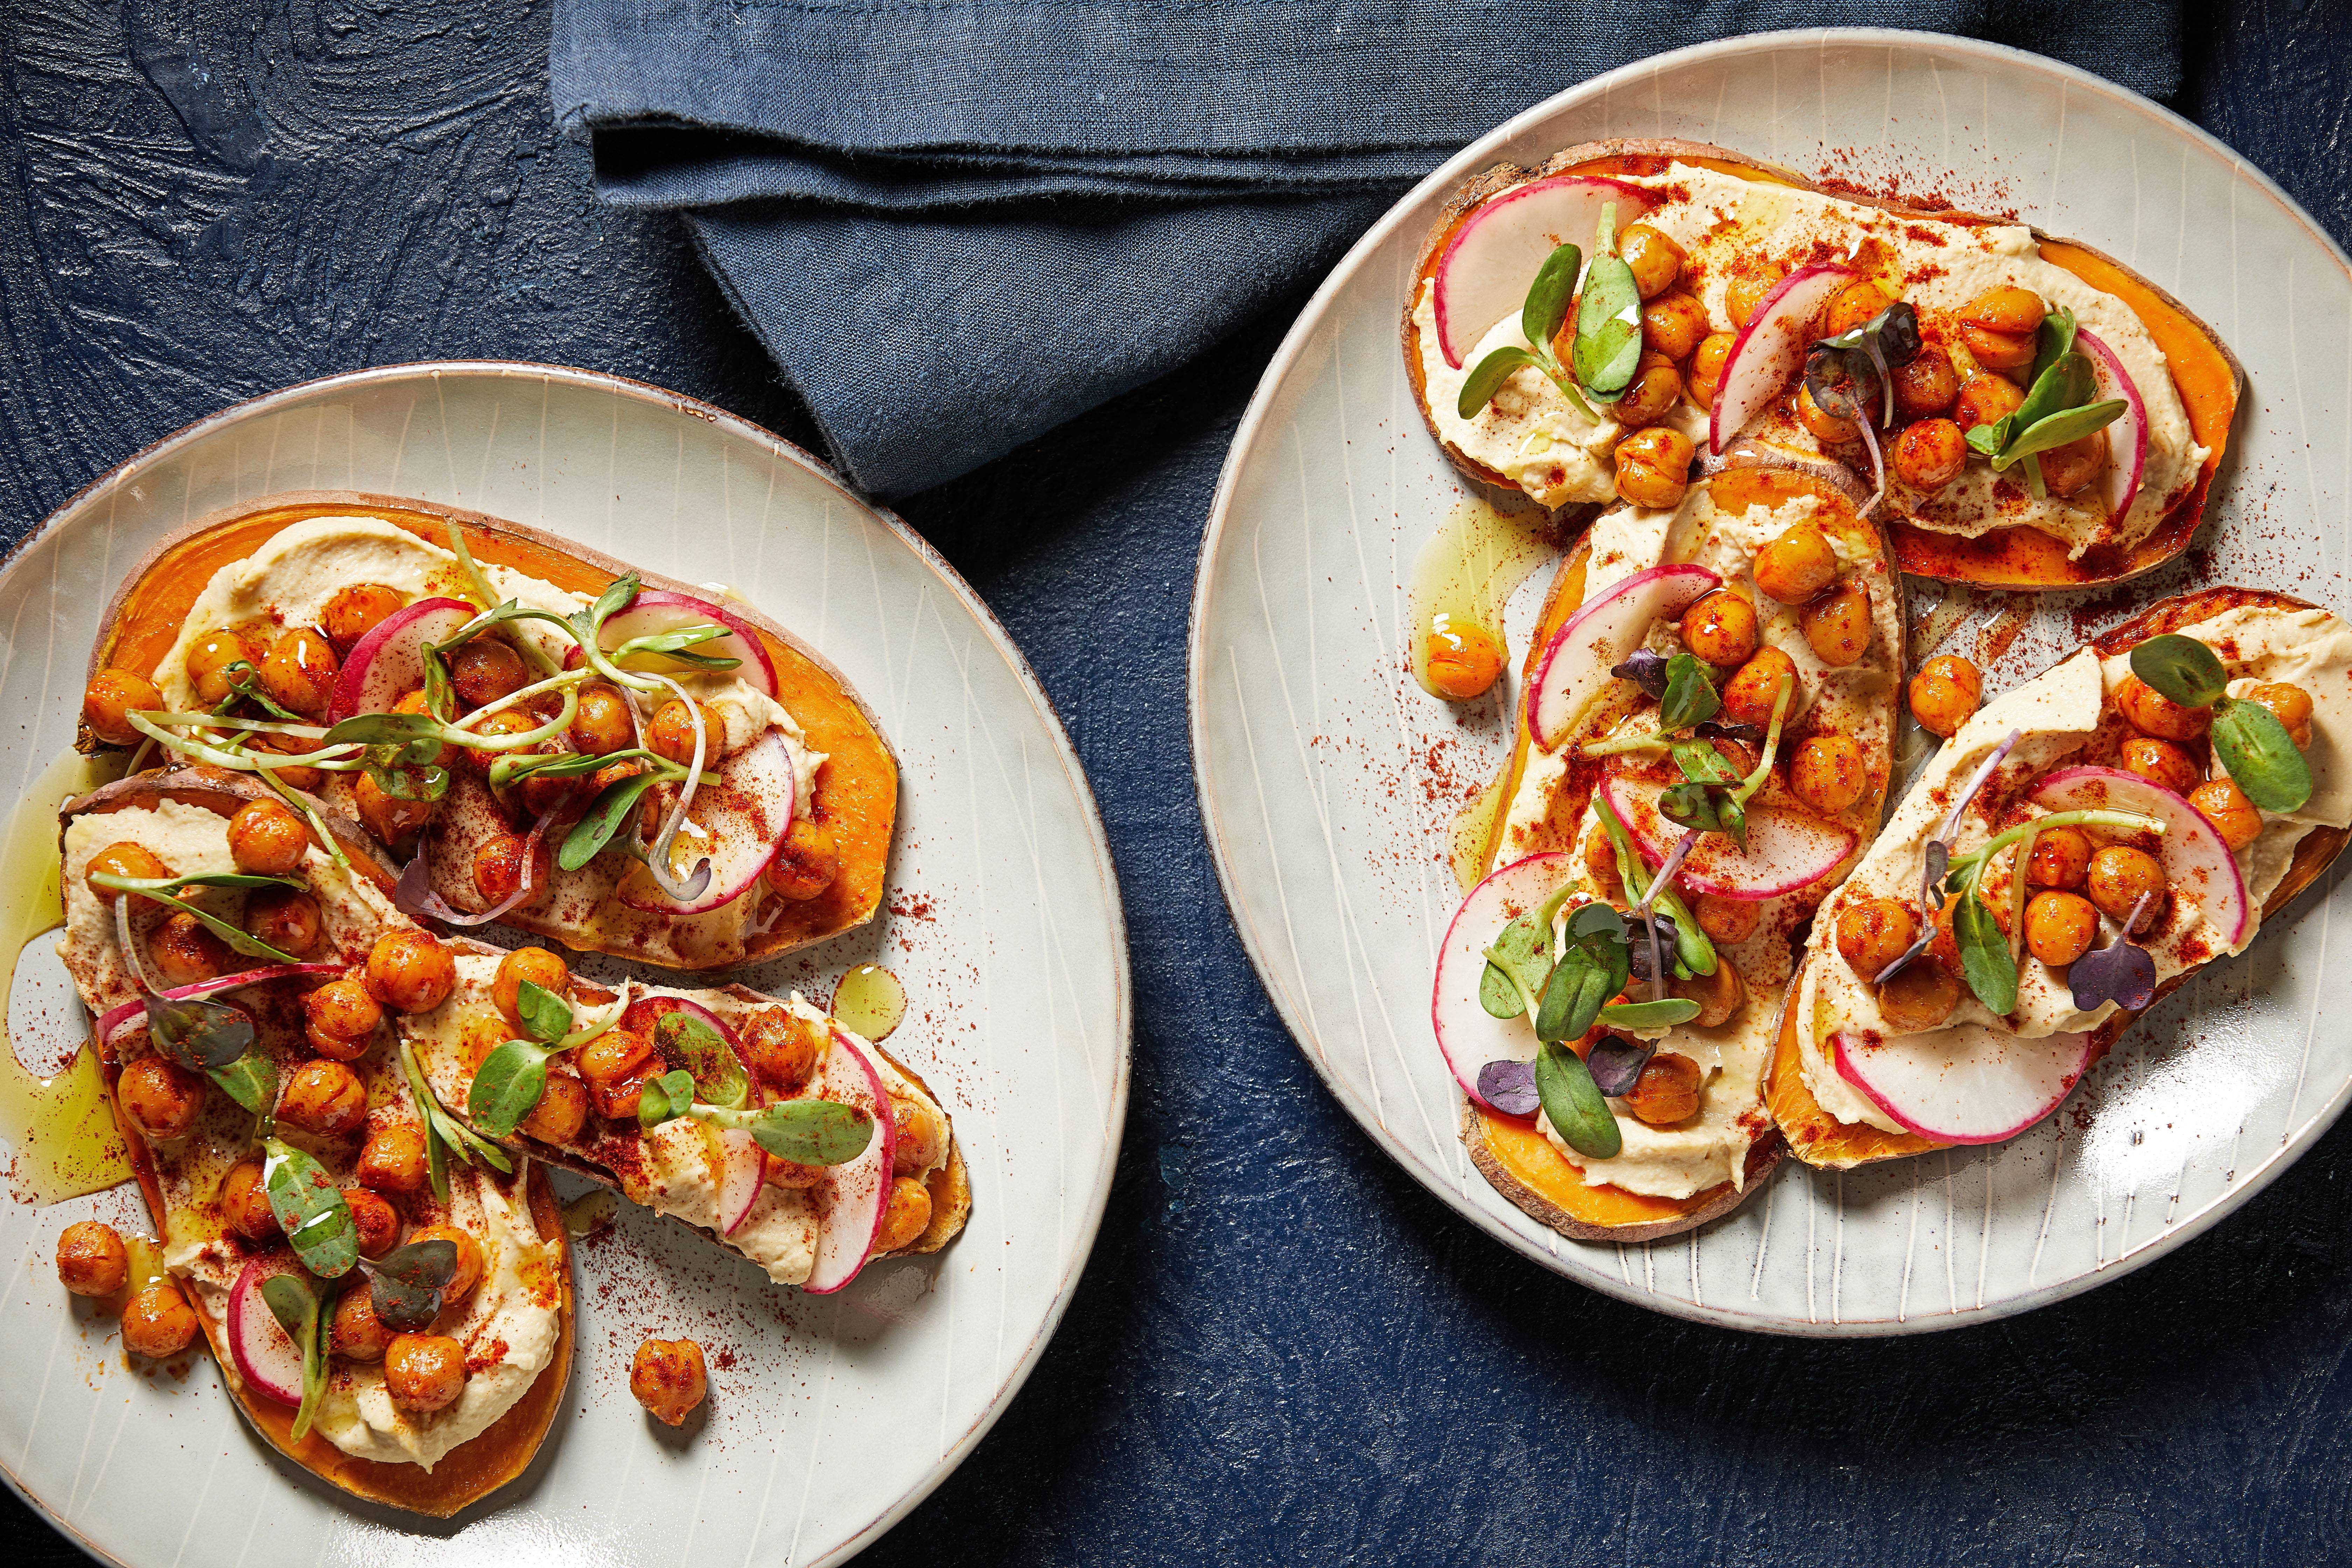 Sweet potato toasts with hummus, radish and sunflower sprouts could be the popular new star for the brunch set.